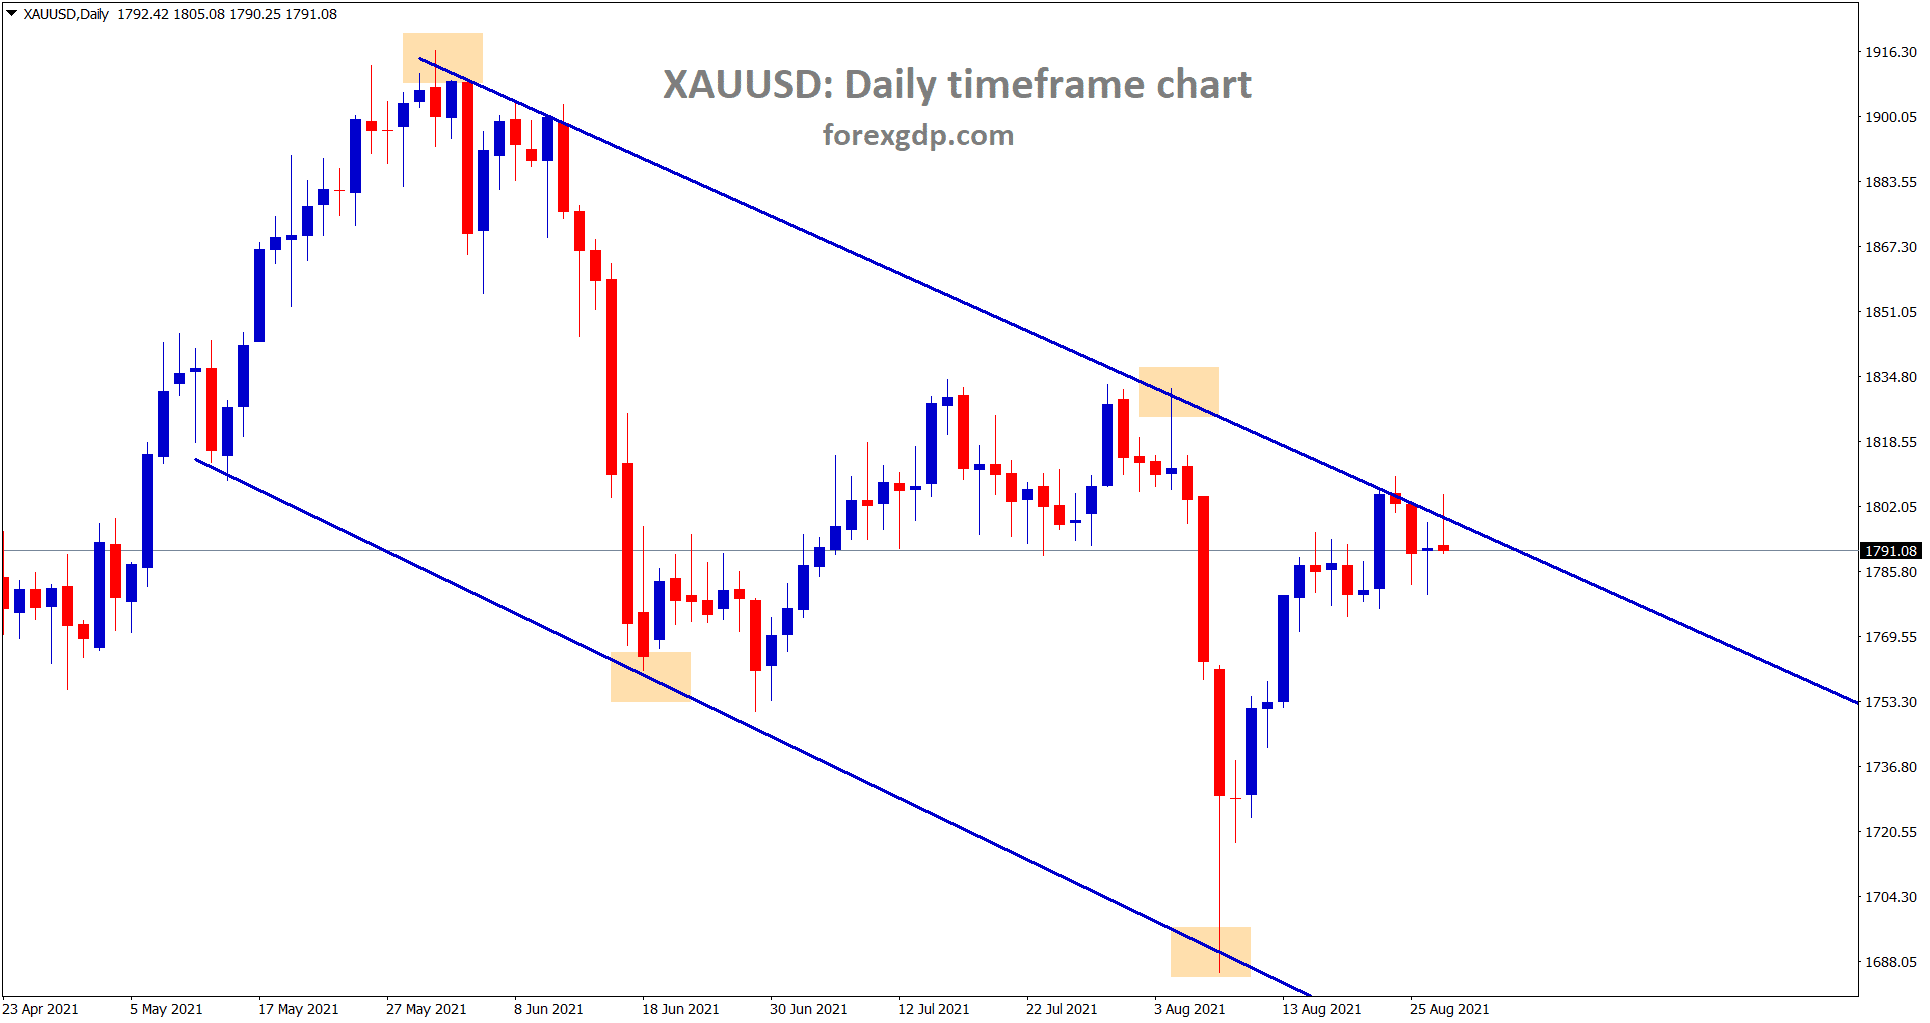 Gold is still consolidating at the lower high of the descending channel wait for the confirmation of breakout or reversals